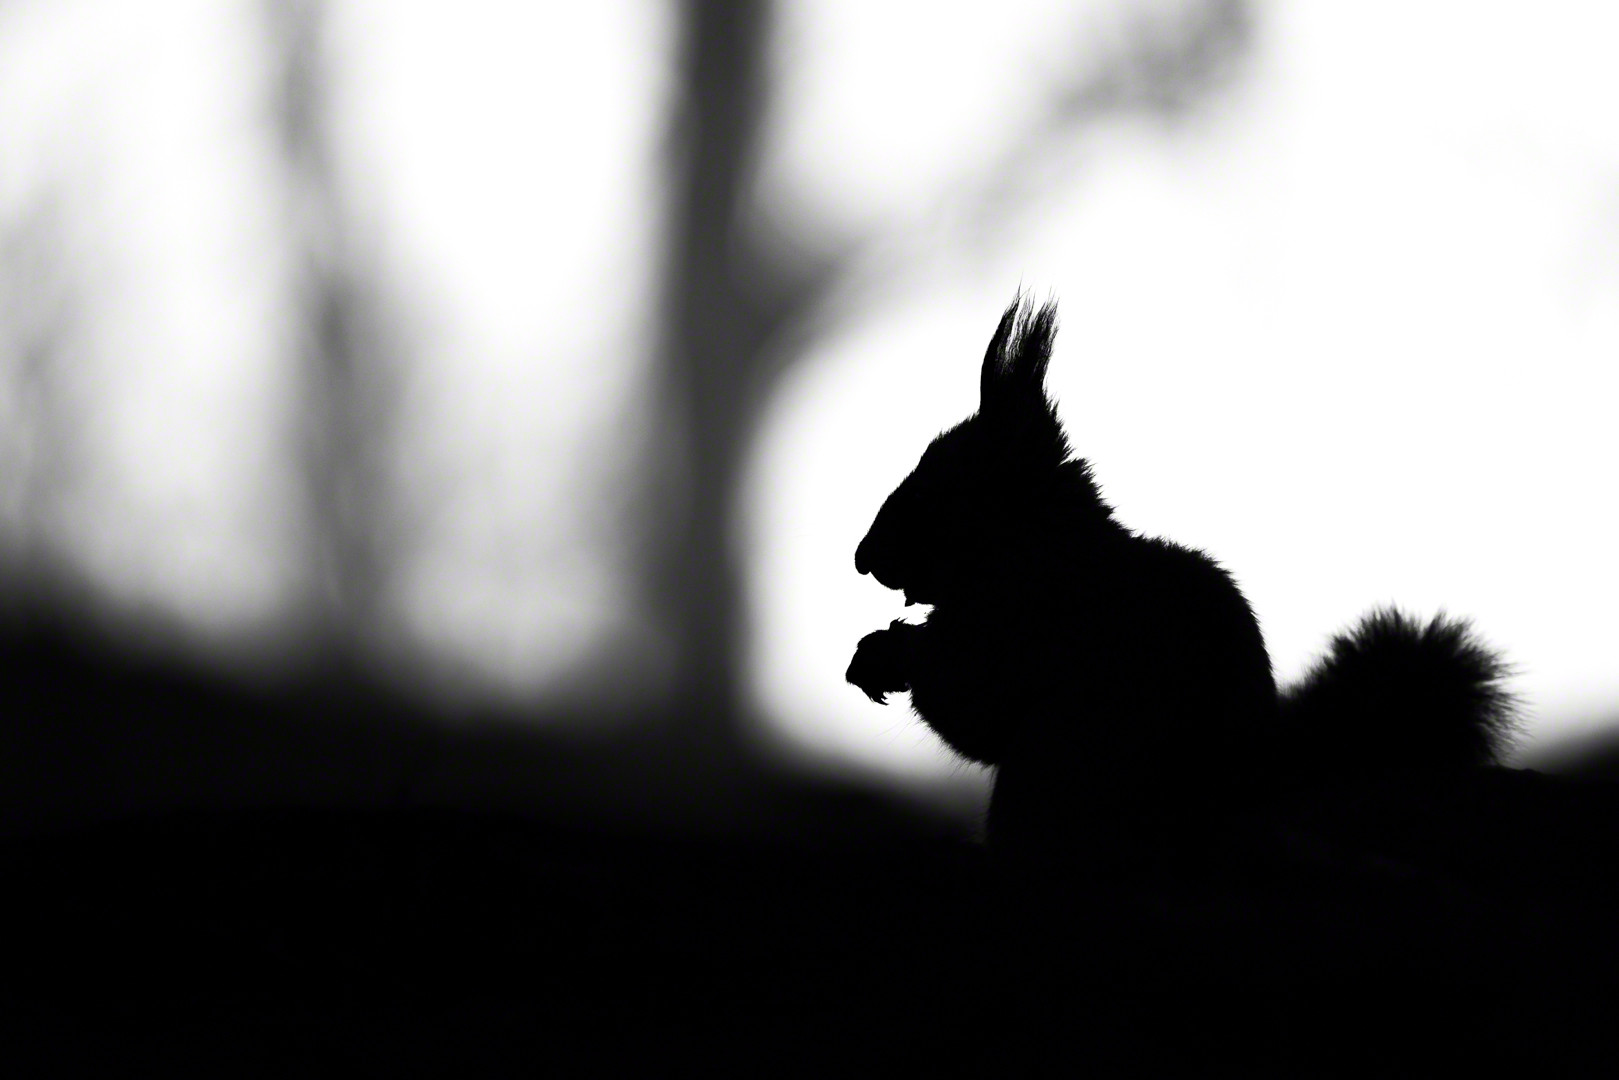 Little Silhouette